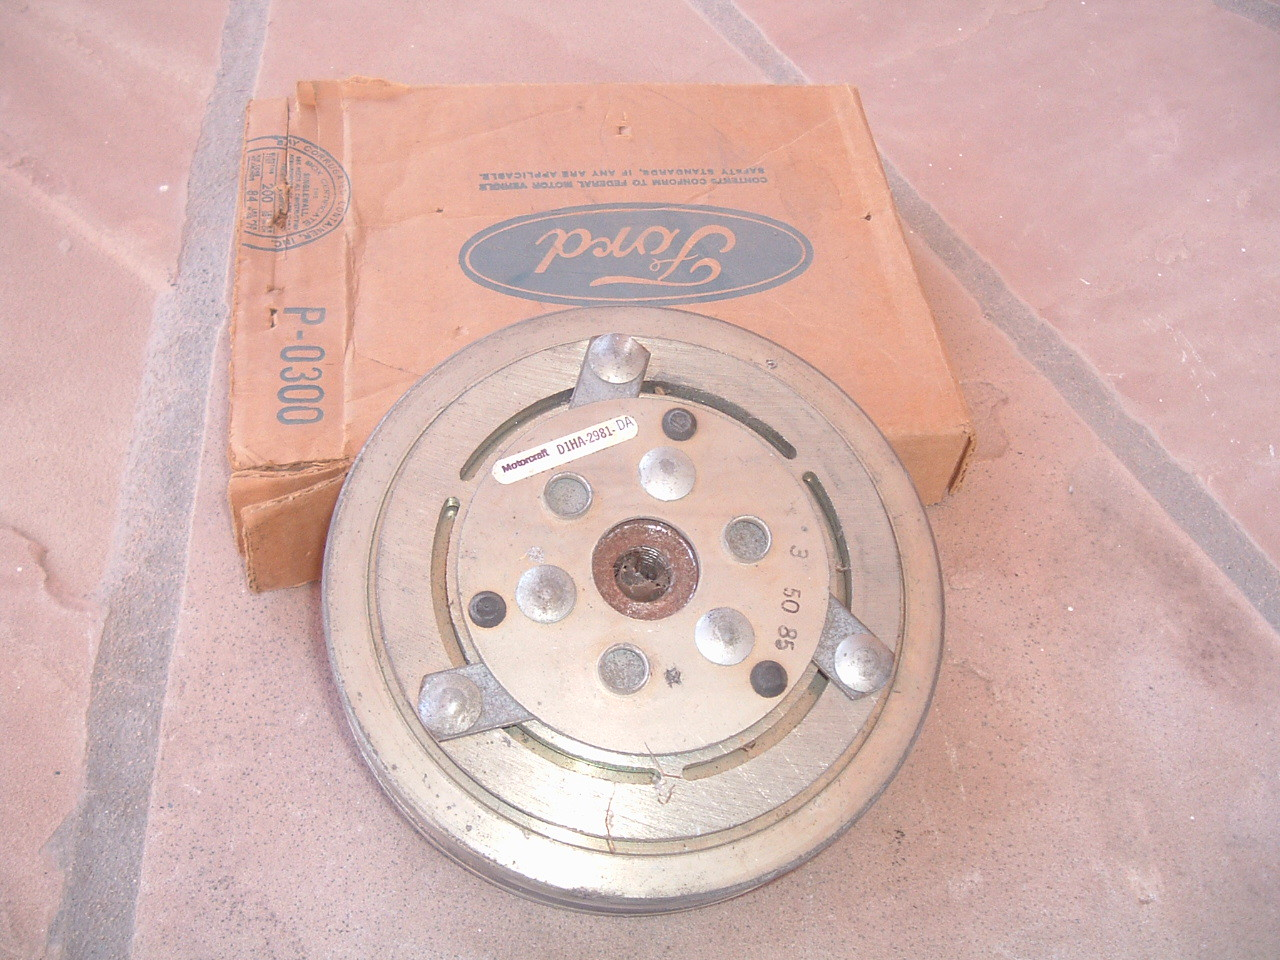 1969 70 71 72 73 74 75 76 77 78 ford airconditioning compress clutch pulley nos ford D1HA-2981-DA (z d1ha2981da)